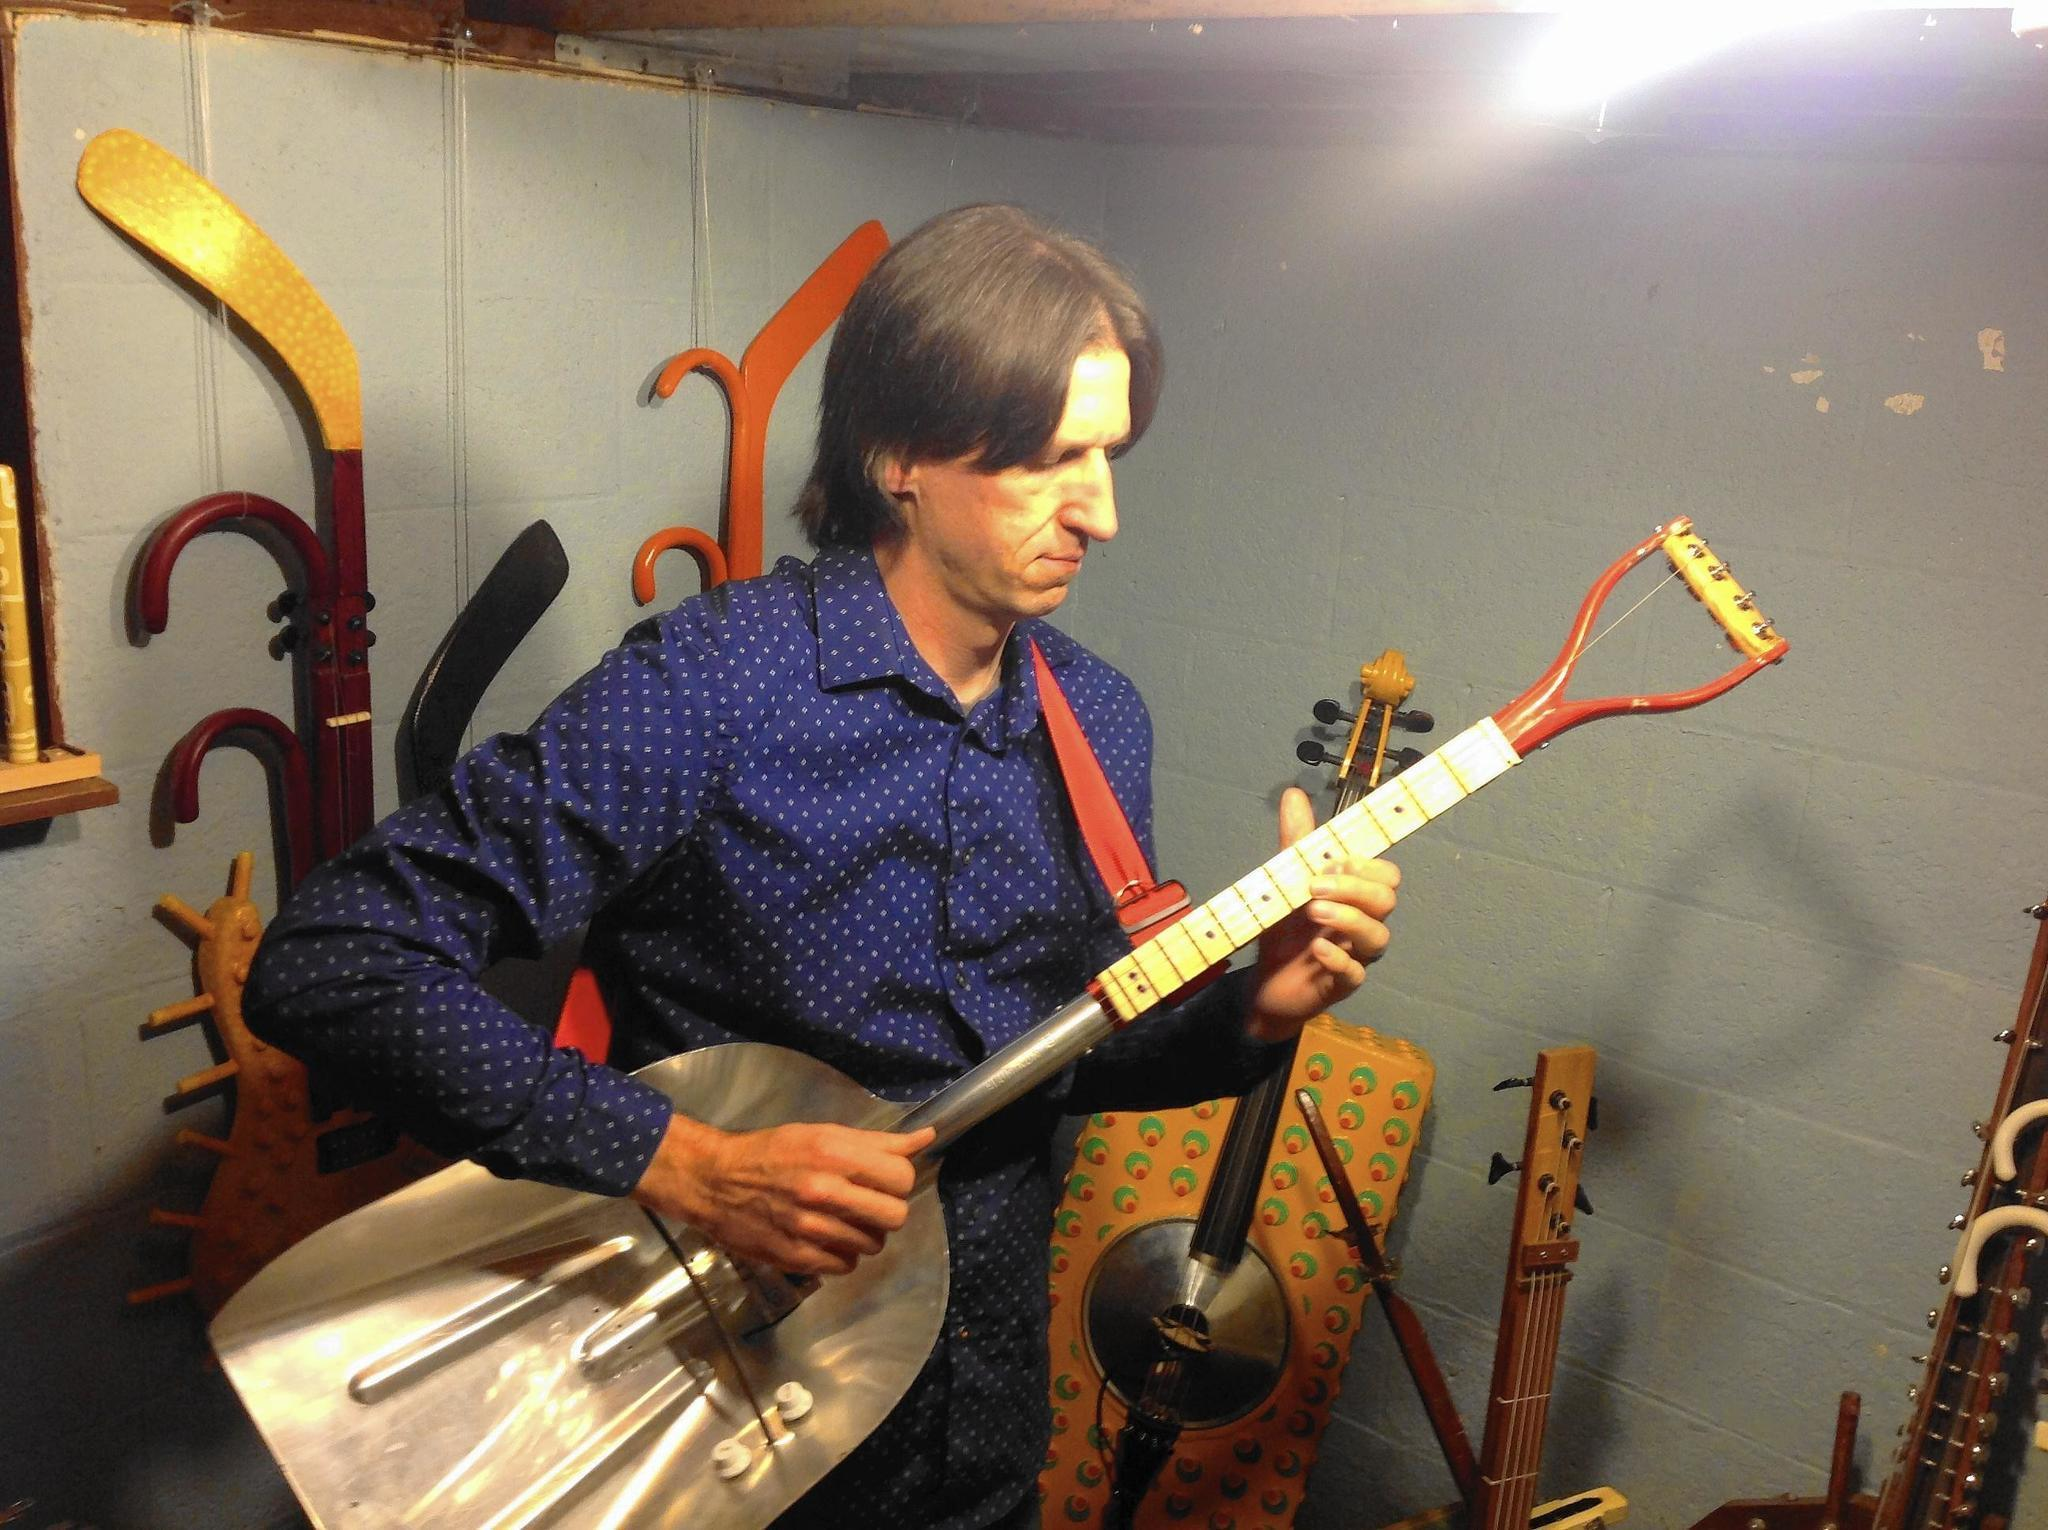 A guitar made from a shovel? Musician's instrumental oddities coming ...